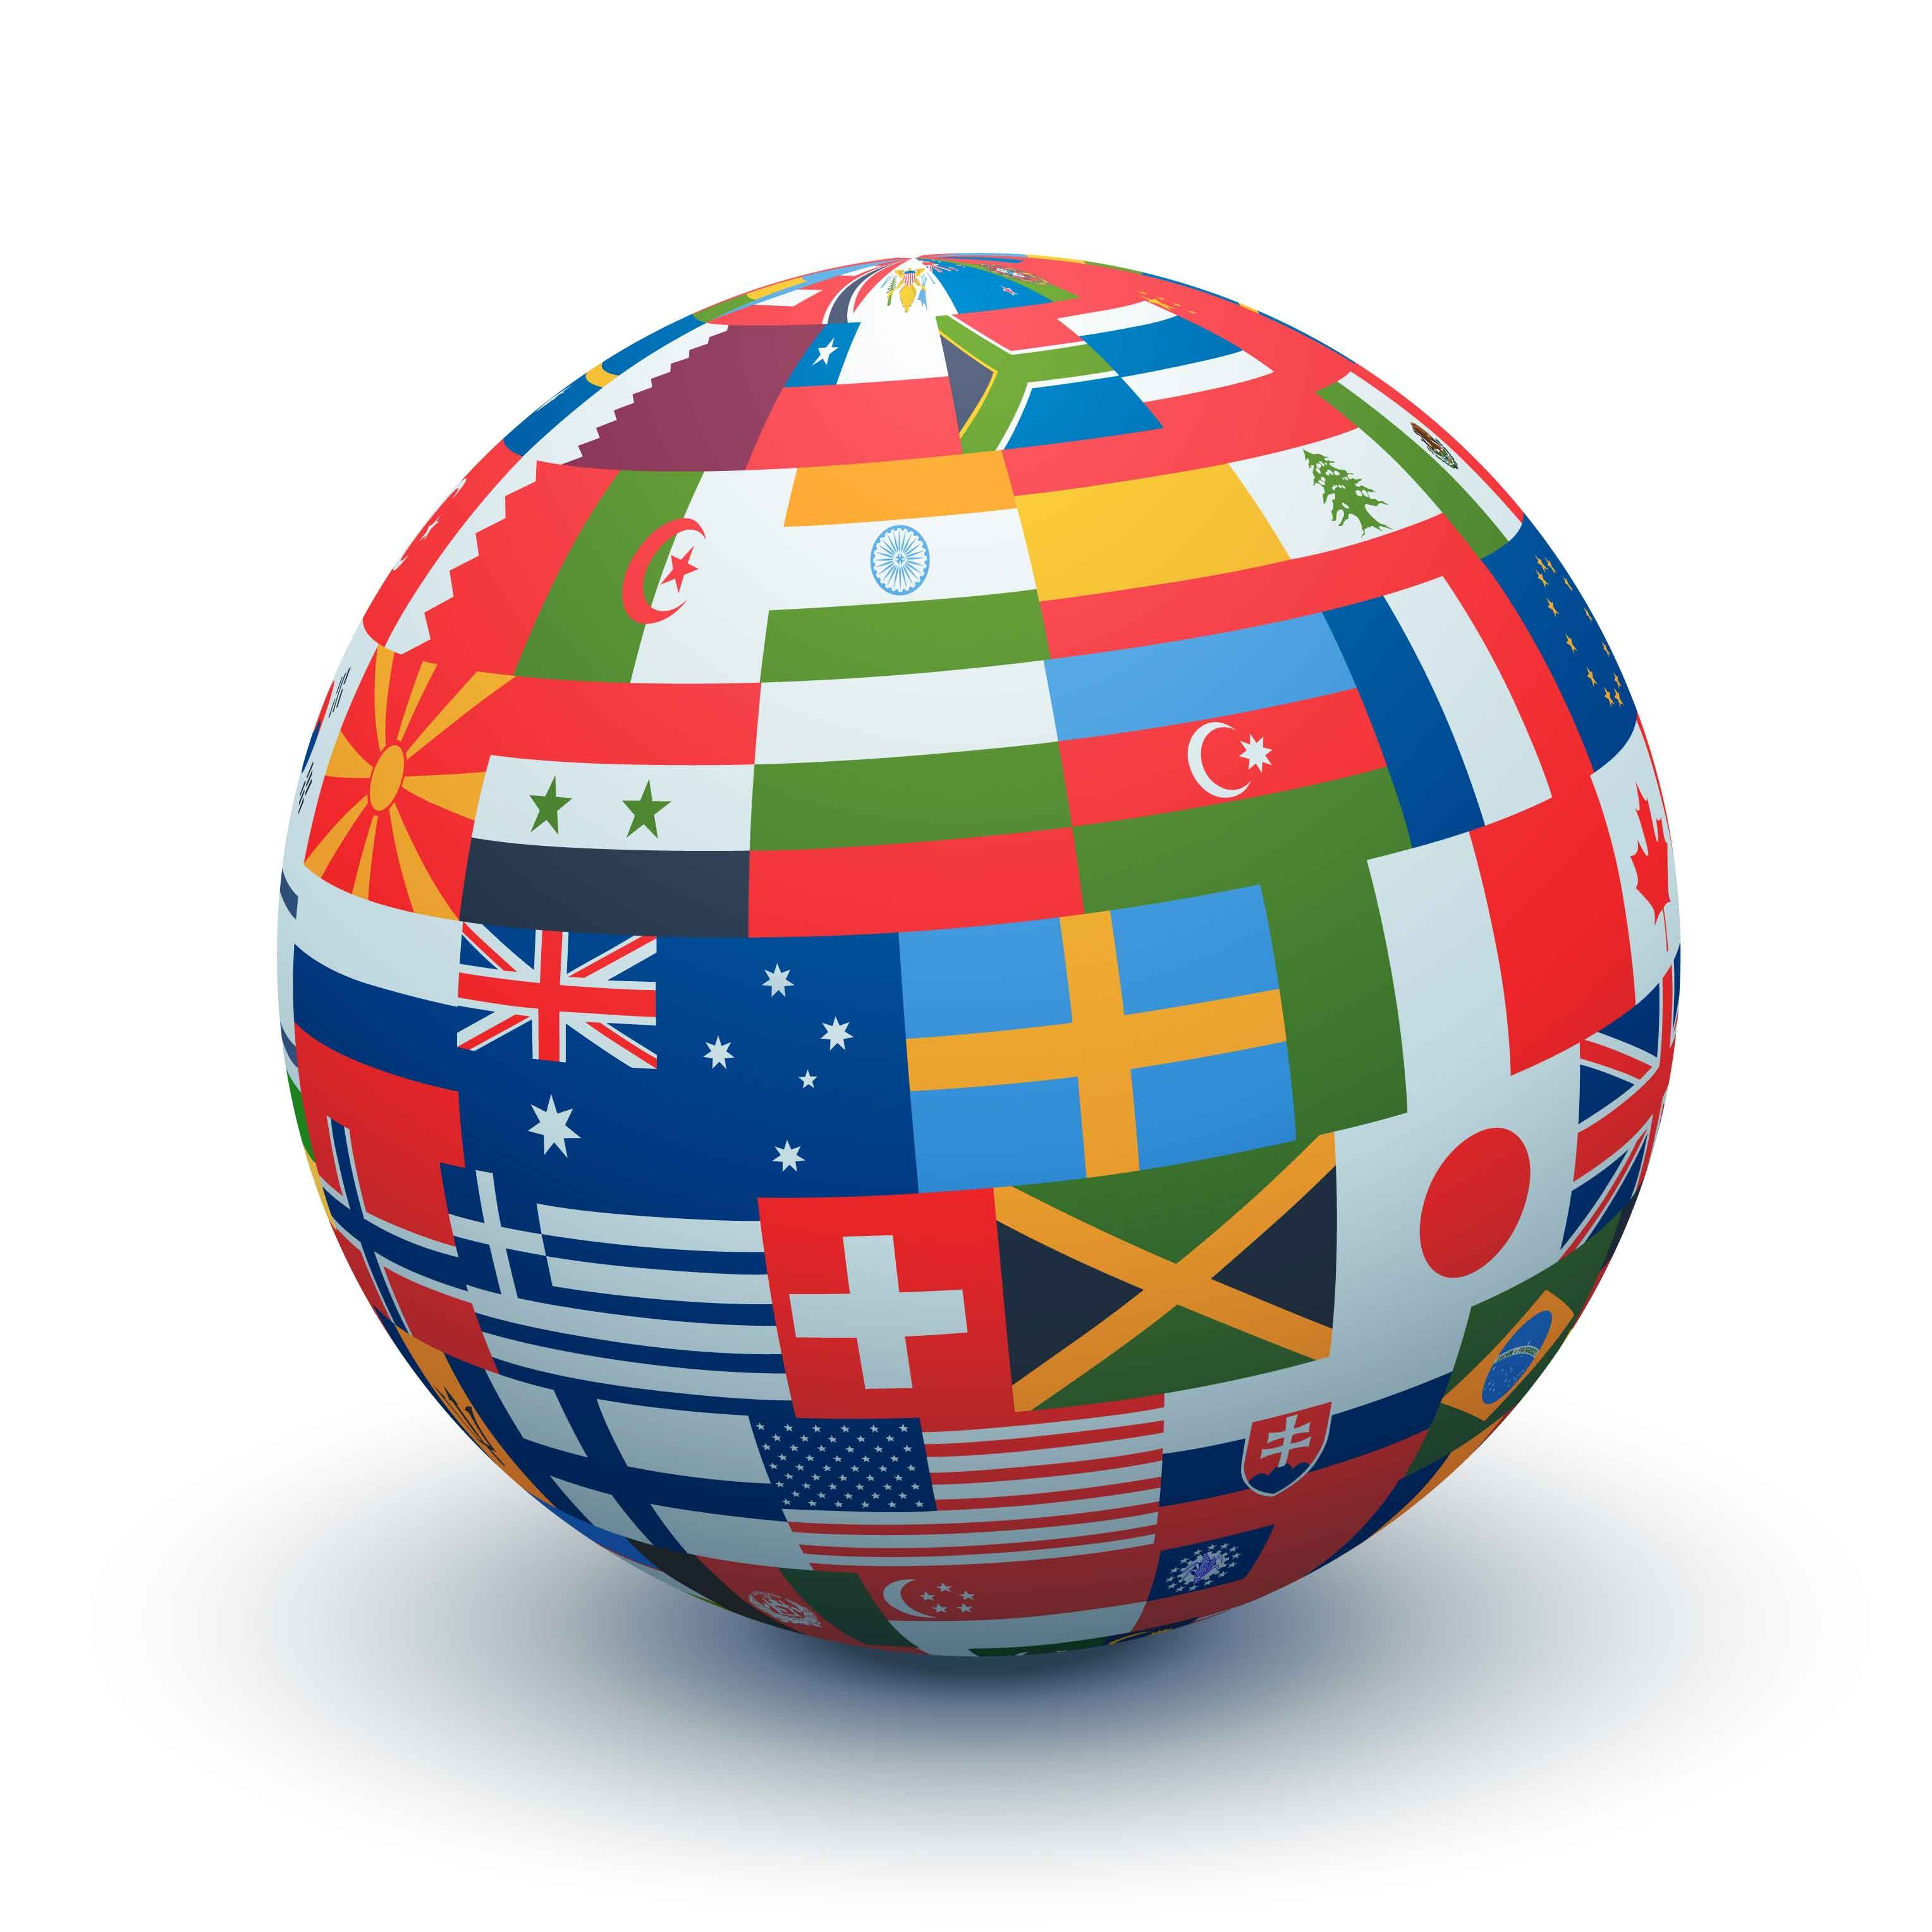 International Relation & Security News And Its Importance